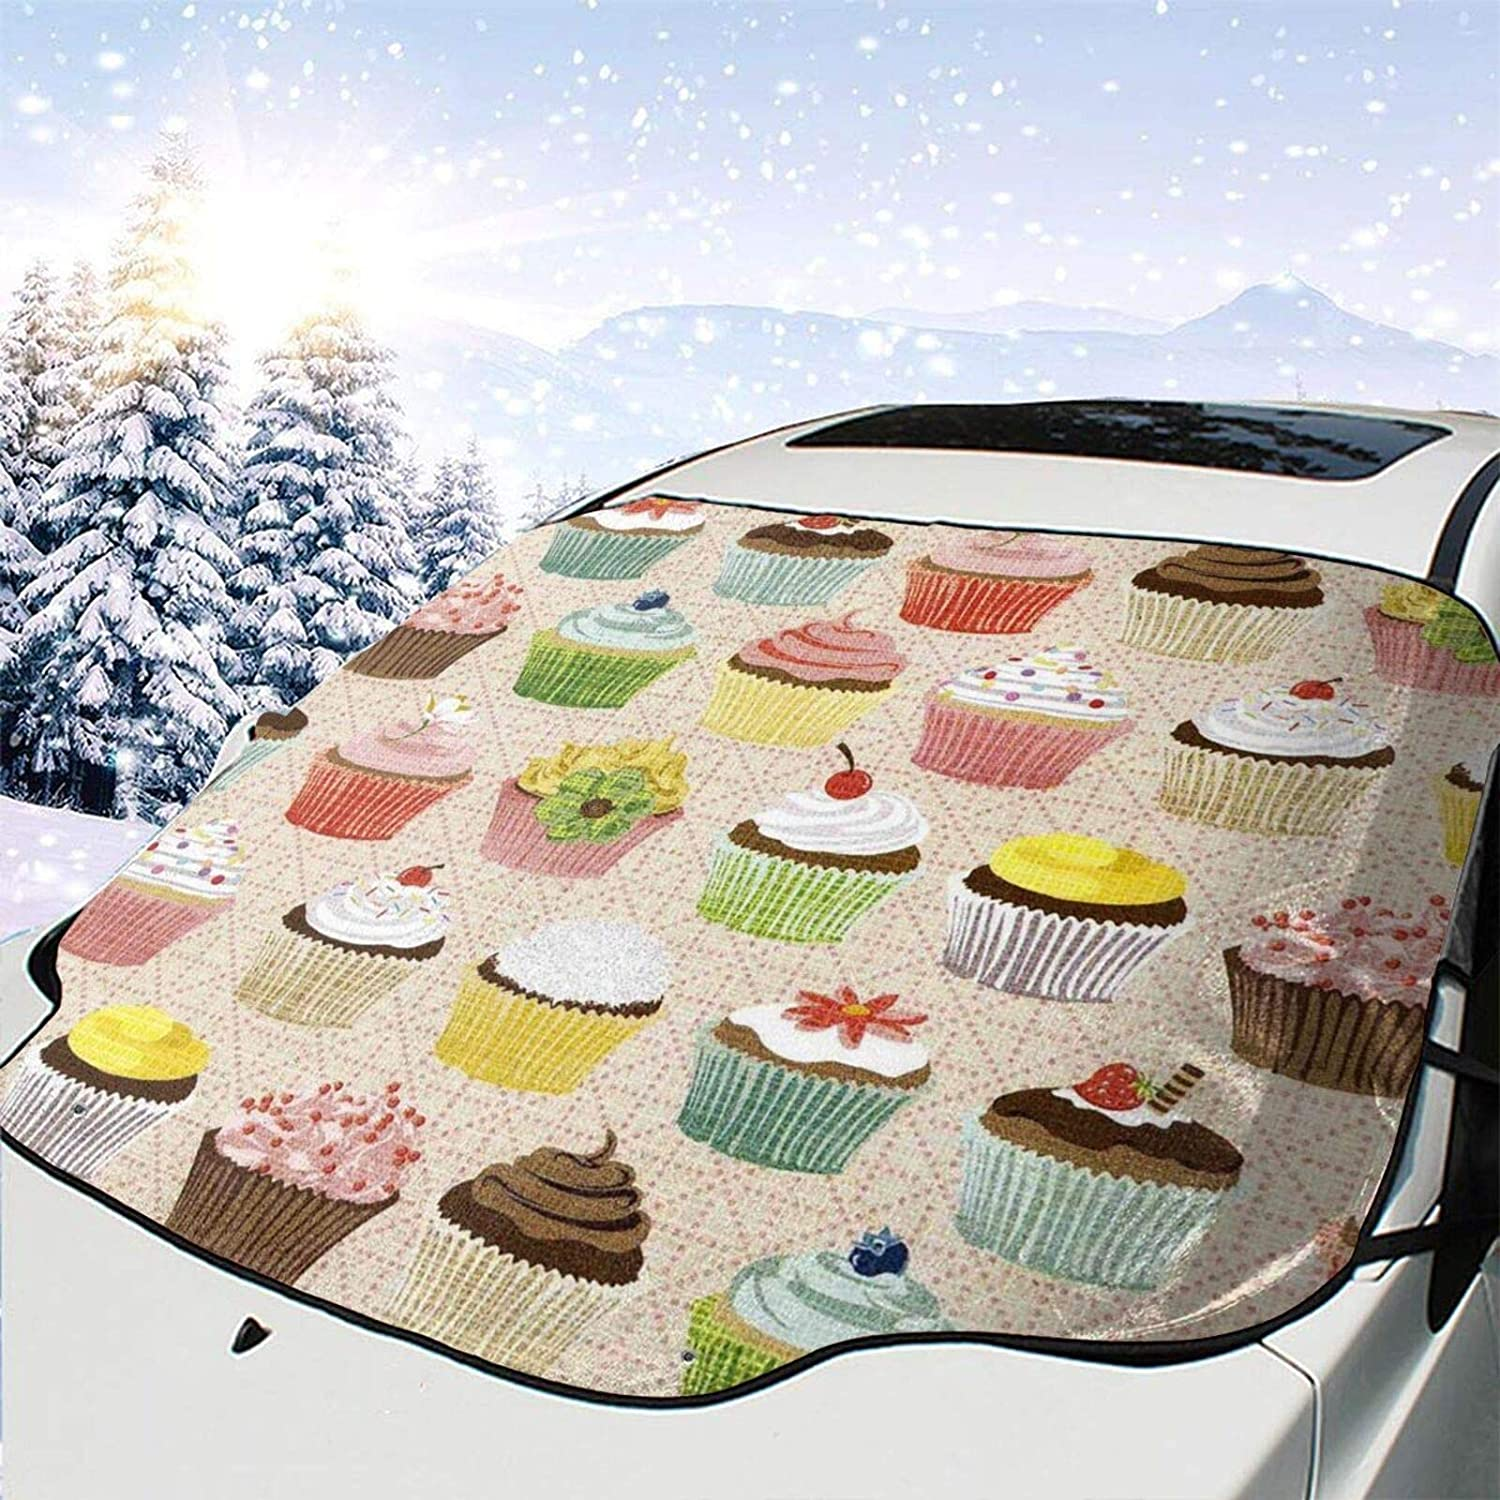 Car Cheap Phoenix Mall mail order specialty store Front Window Windshield Snow Cover Sweet Cupcakes Ice Guard